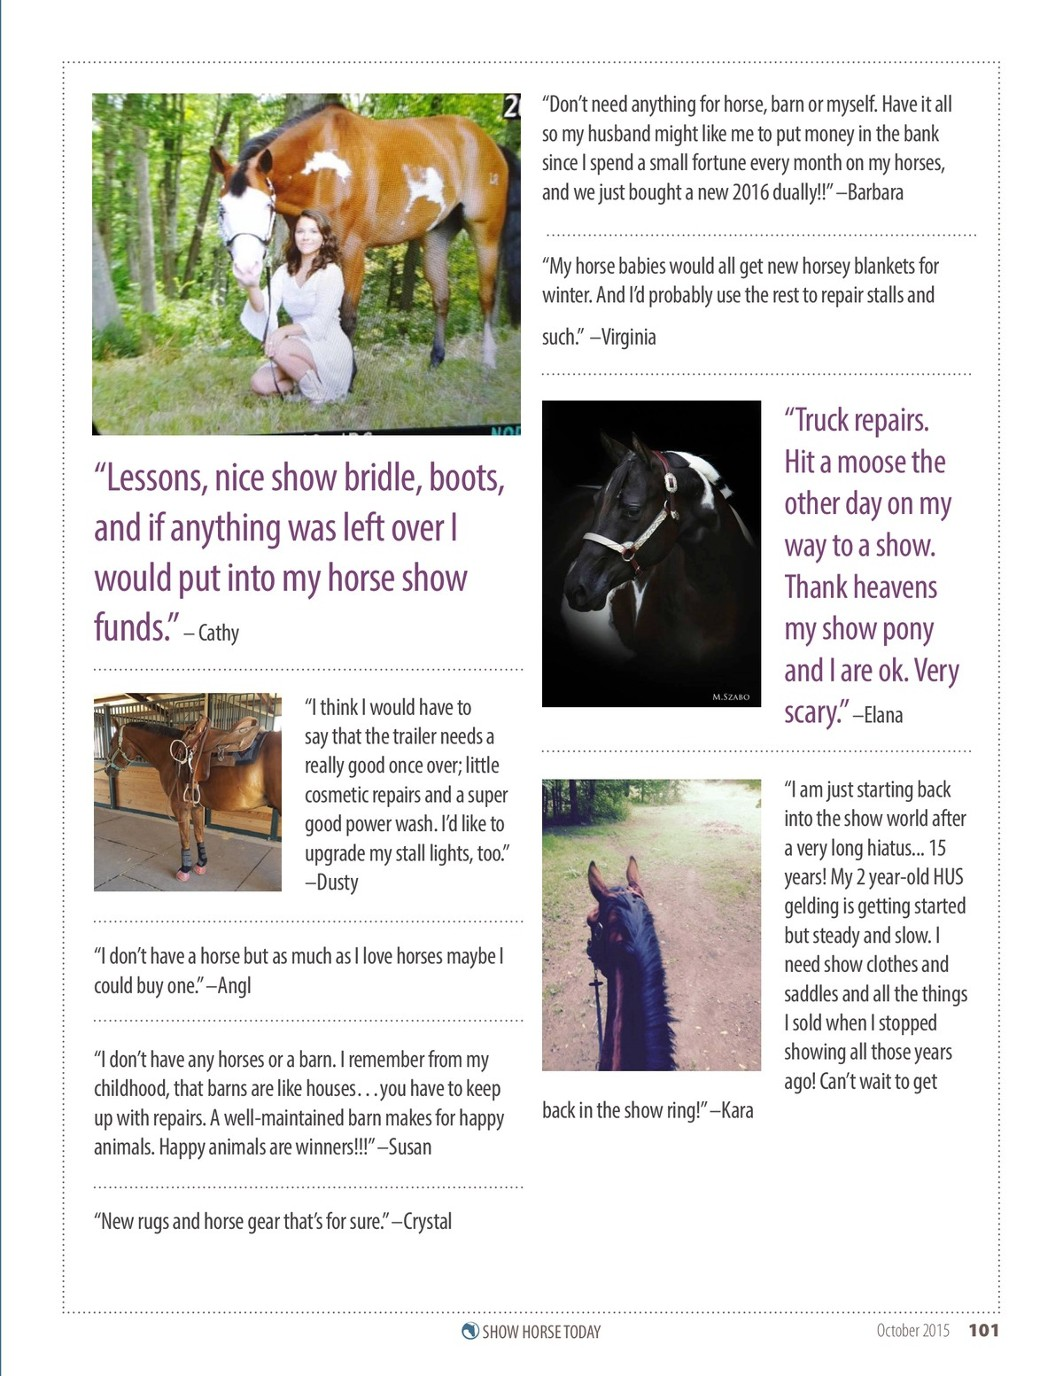 Show Horse Today October 2015 Issue